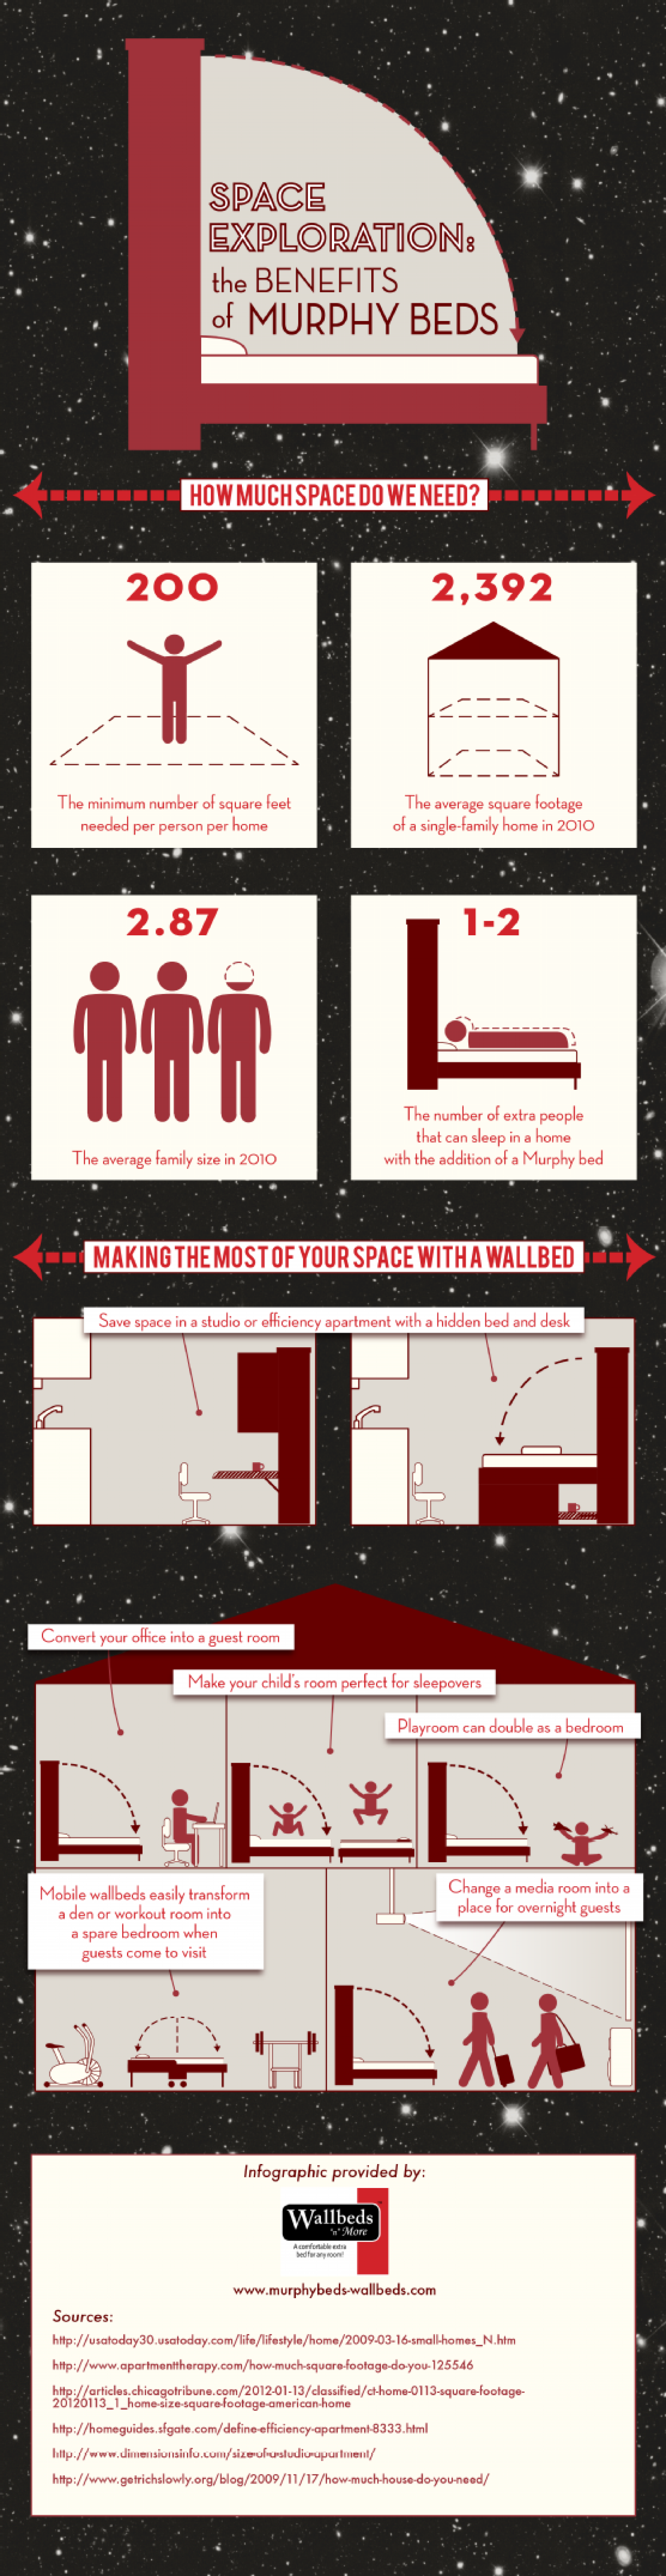 Space Saving Tips and Benefits of a Murphy Wallbed!  Infographic